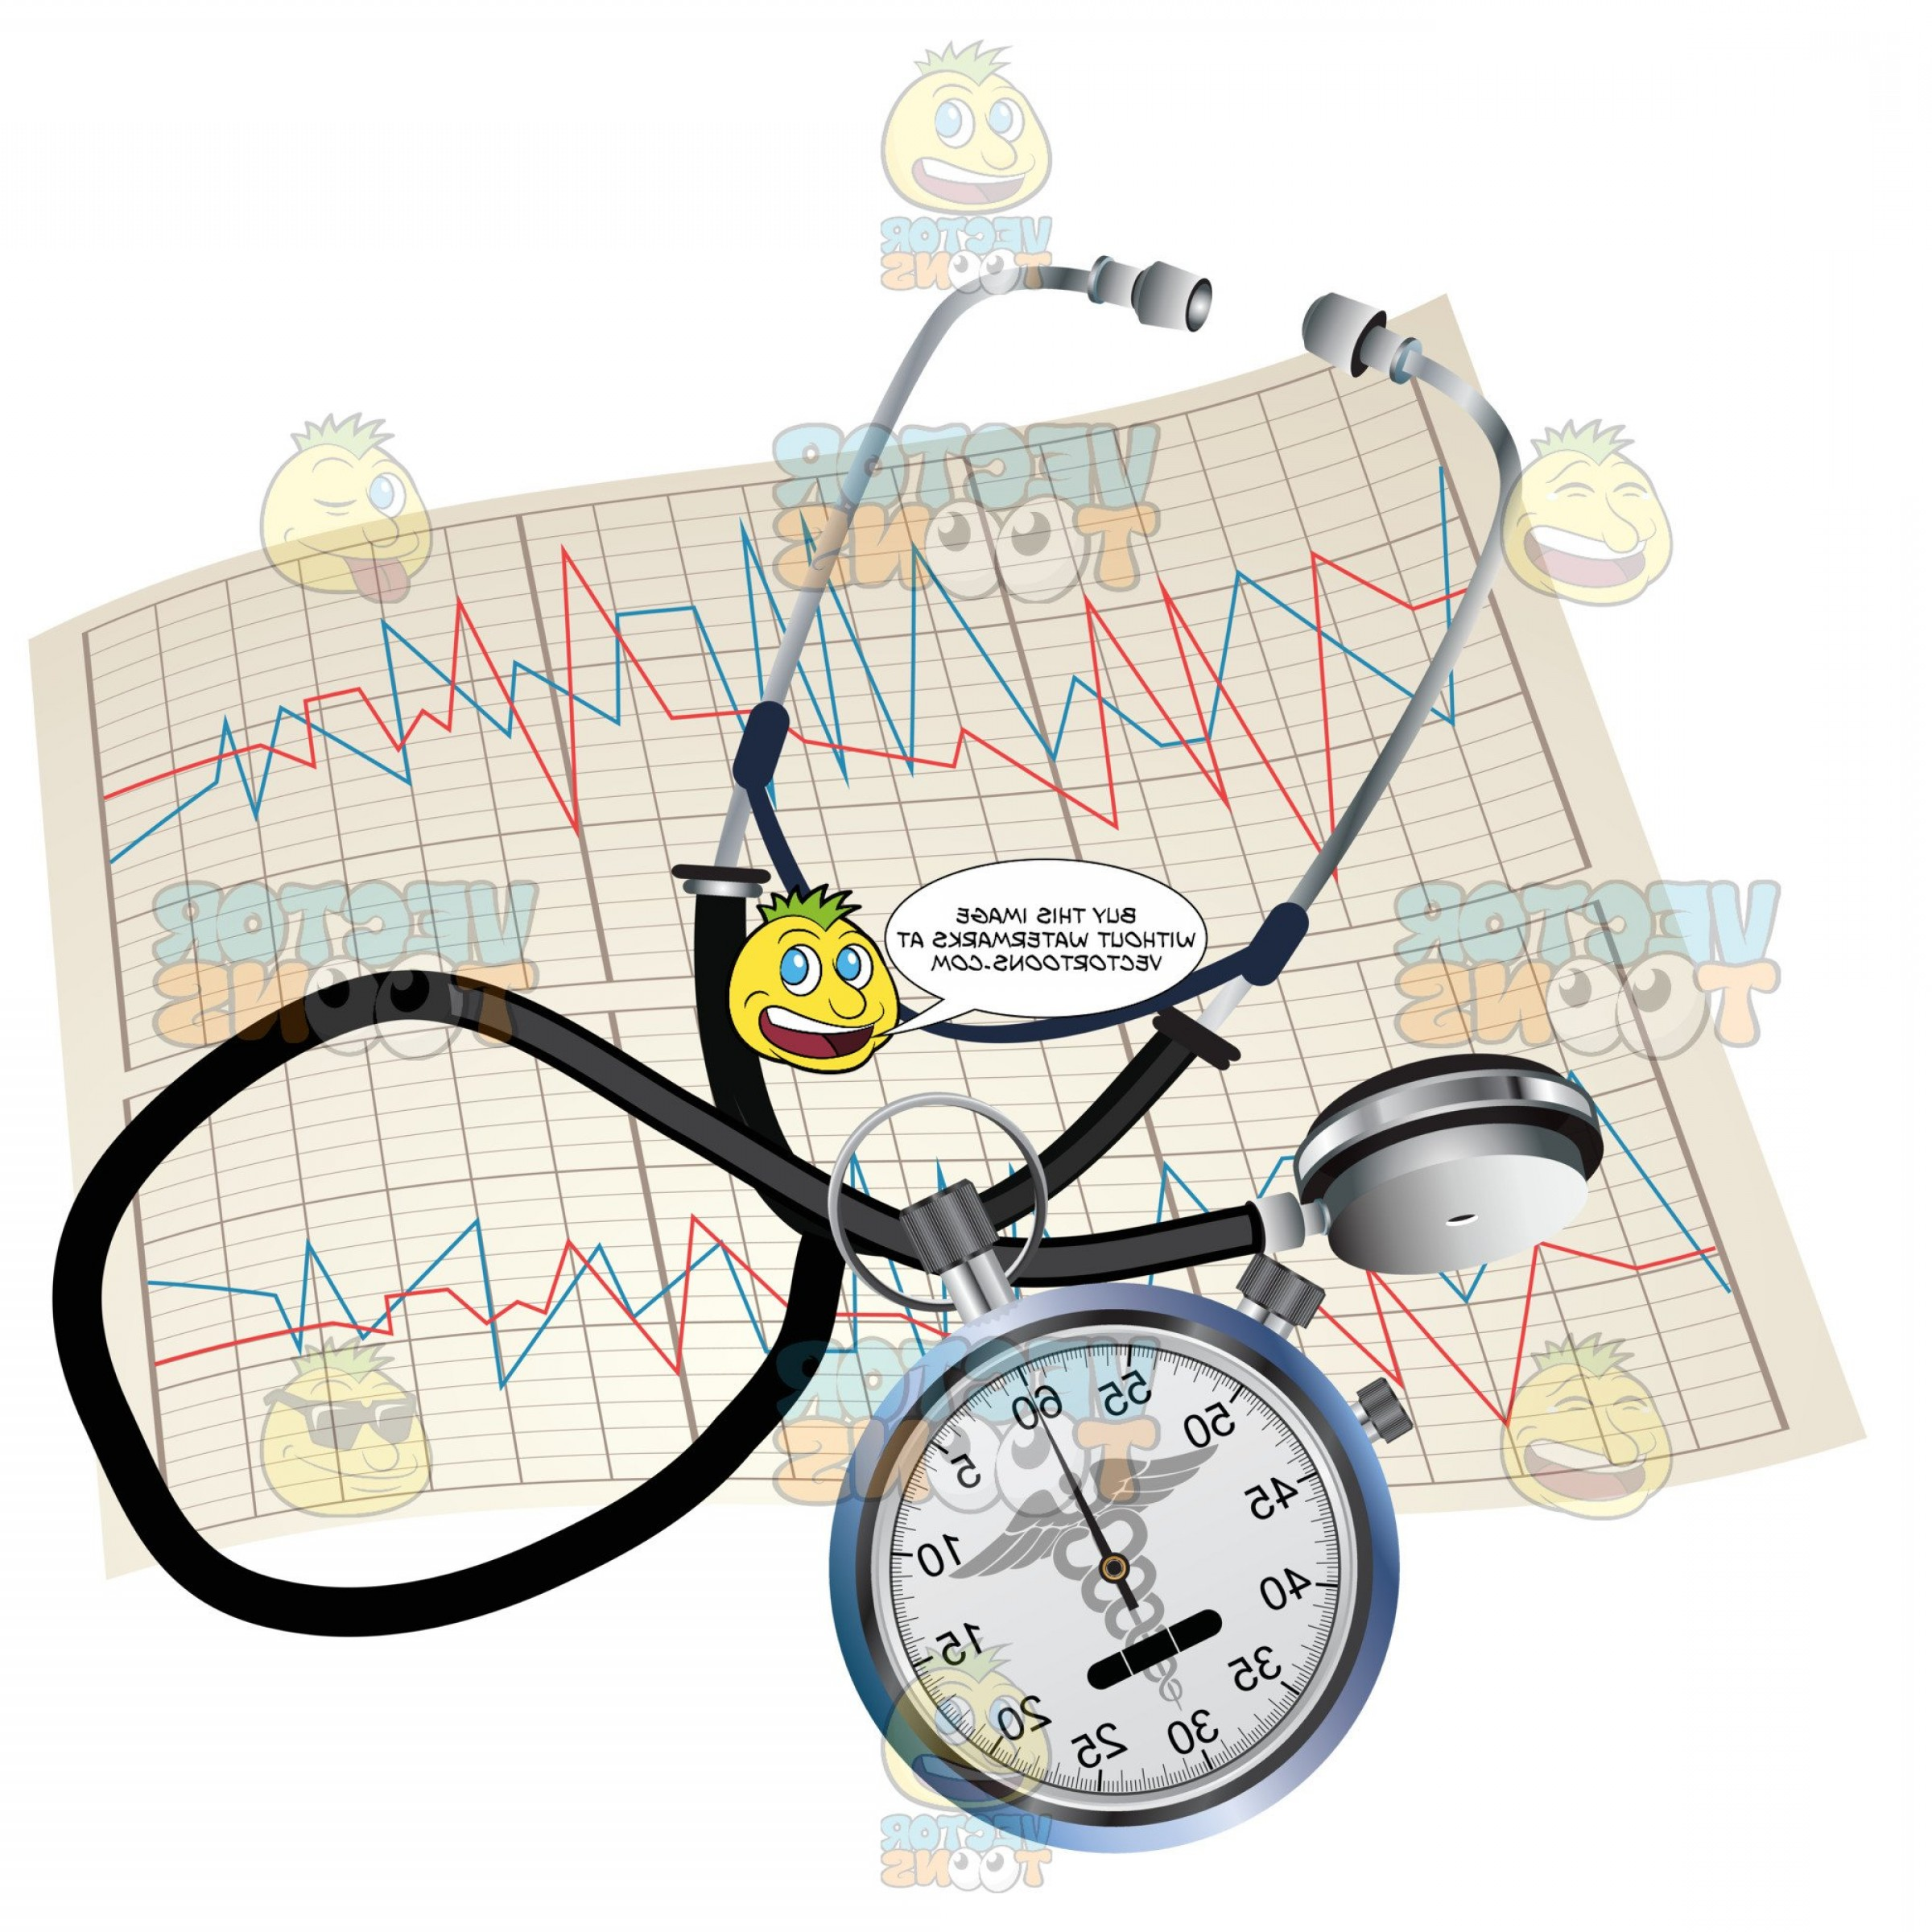 Stop Watch Vector Ai File: Stethoscope Stop Watch And A Print Out From An Ekg